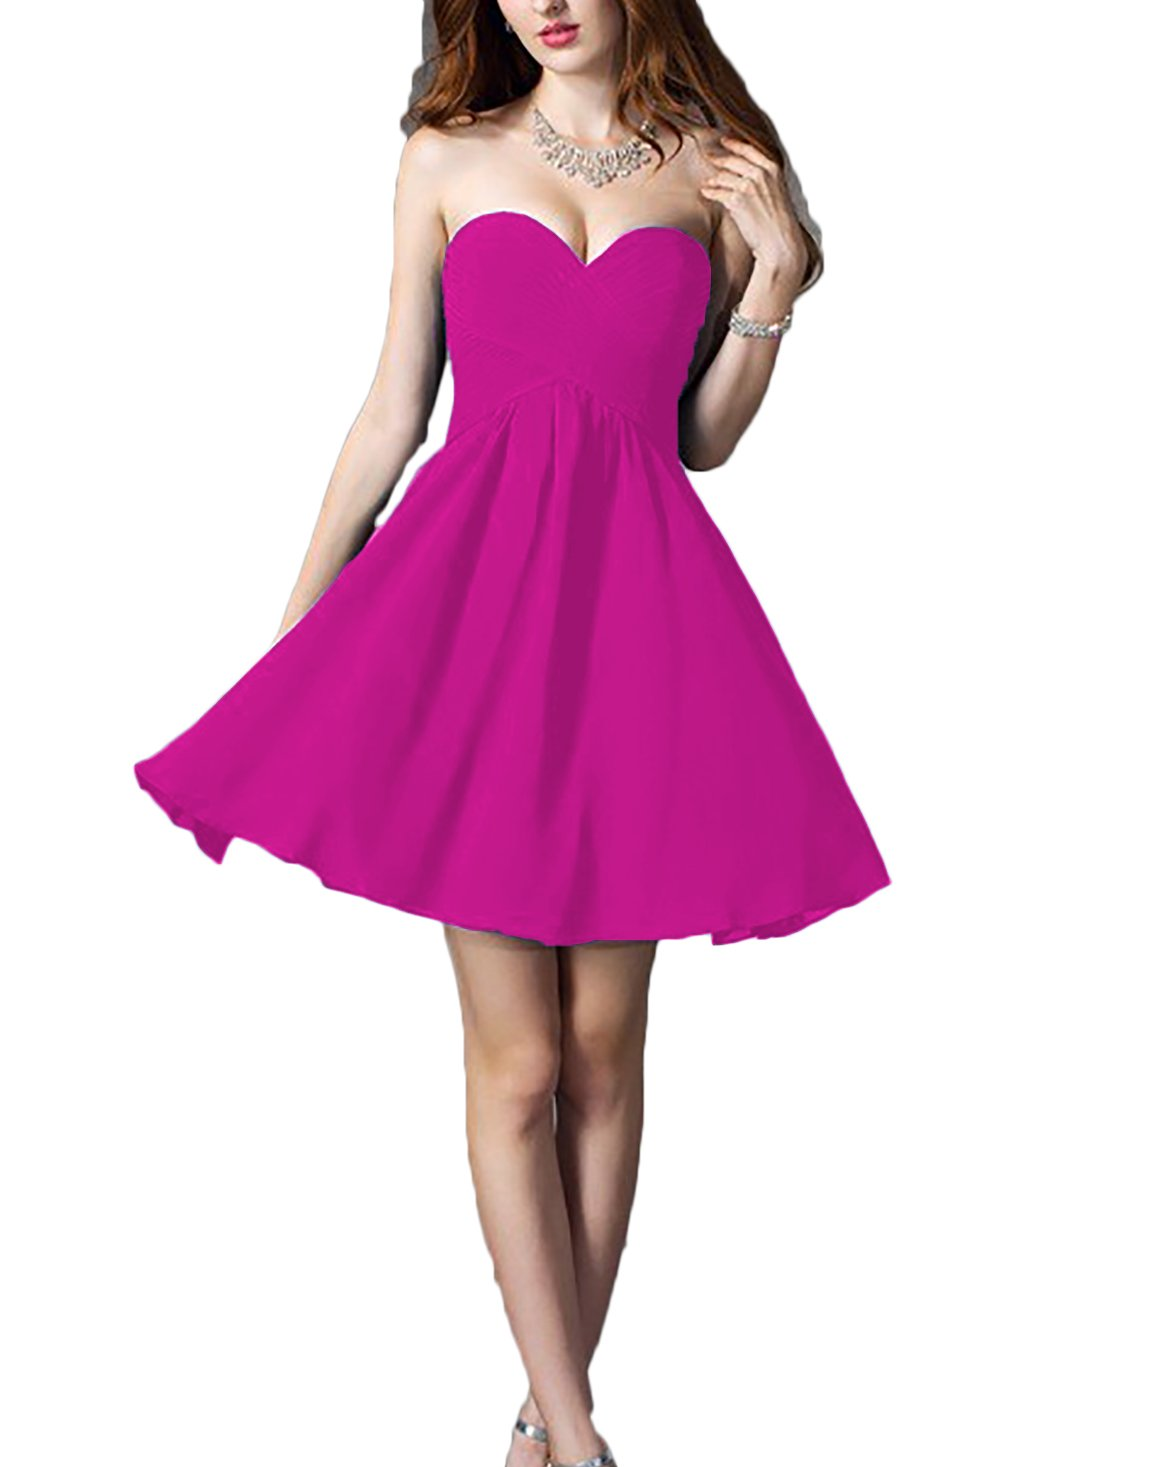 93db3e973f8 ... Women s 2018 Empire Sweetheart Short Bridesmaid Dresses Chiffon Party  Gowns Casual Hot Pink 4.   